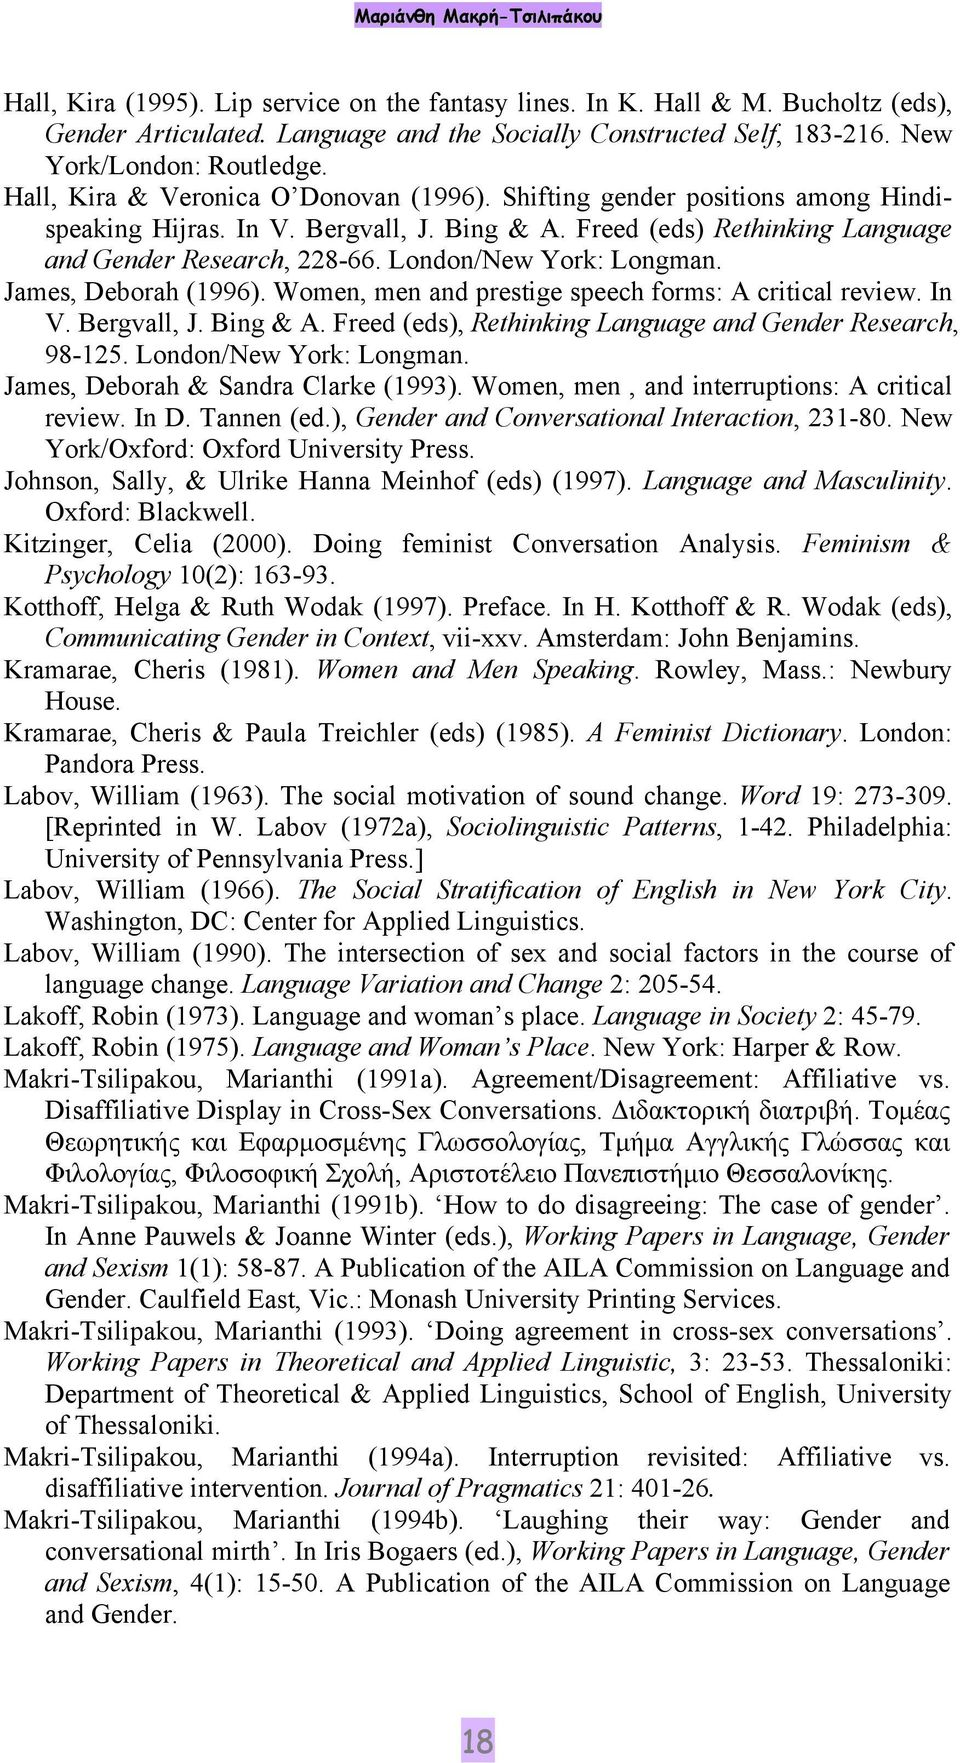 Freed (eds) Rethinking Language and Gender Research, 228-66. London/New York: Longman. James, Deborah (1996). Women, men and prestige speech forms: A critical review. In V. Bergvall, J. Bing & A.